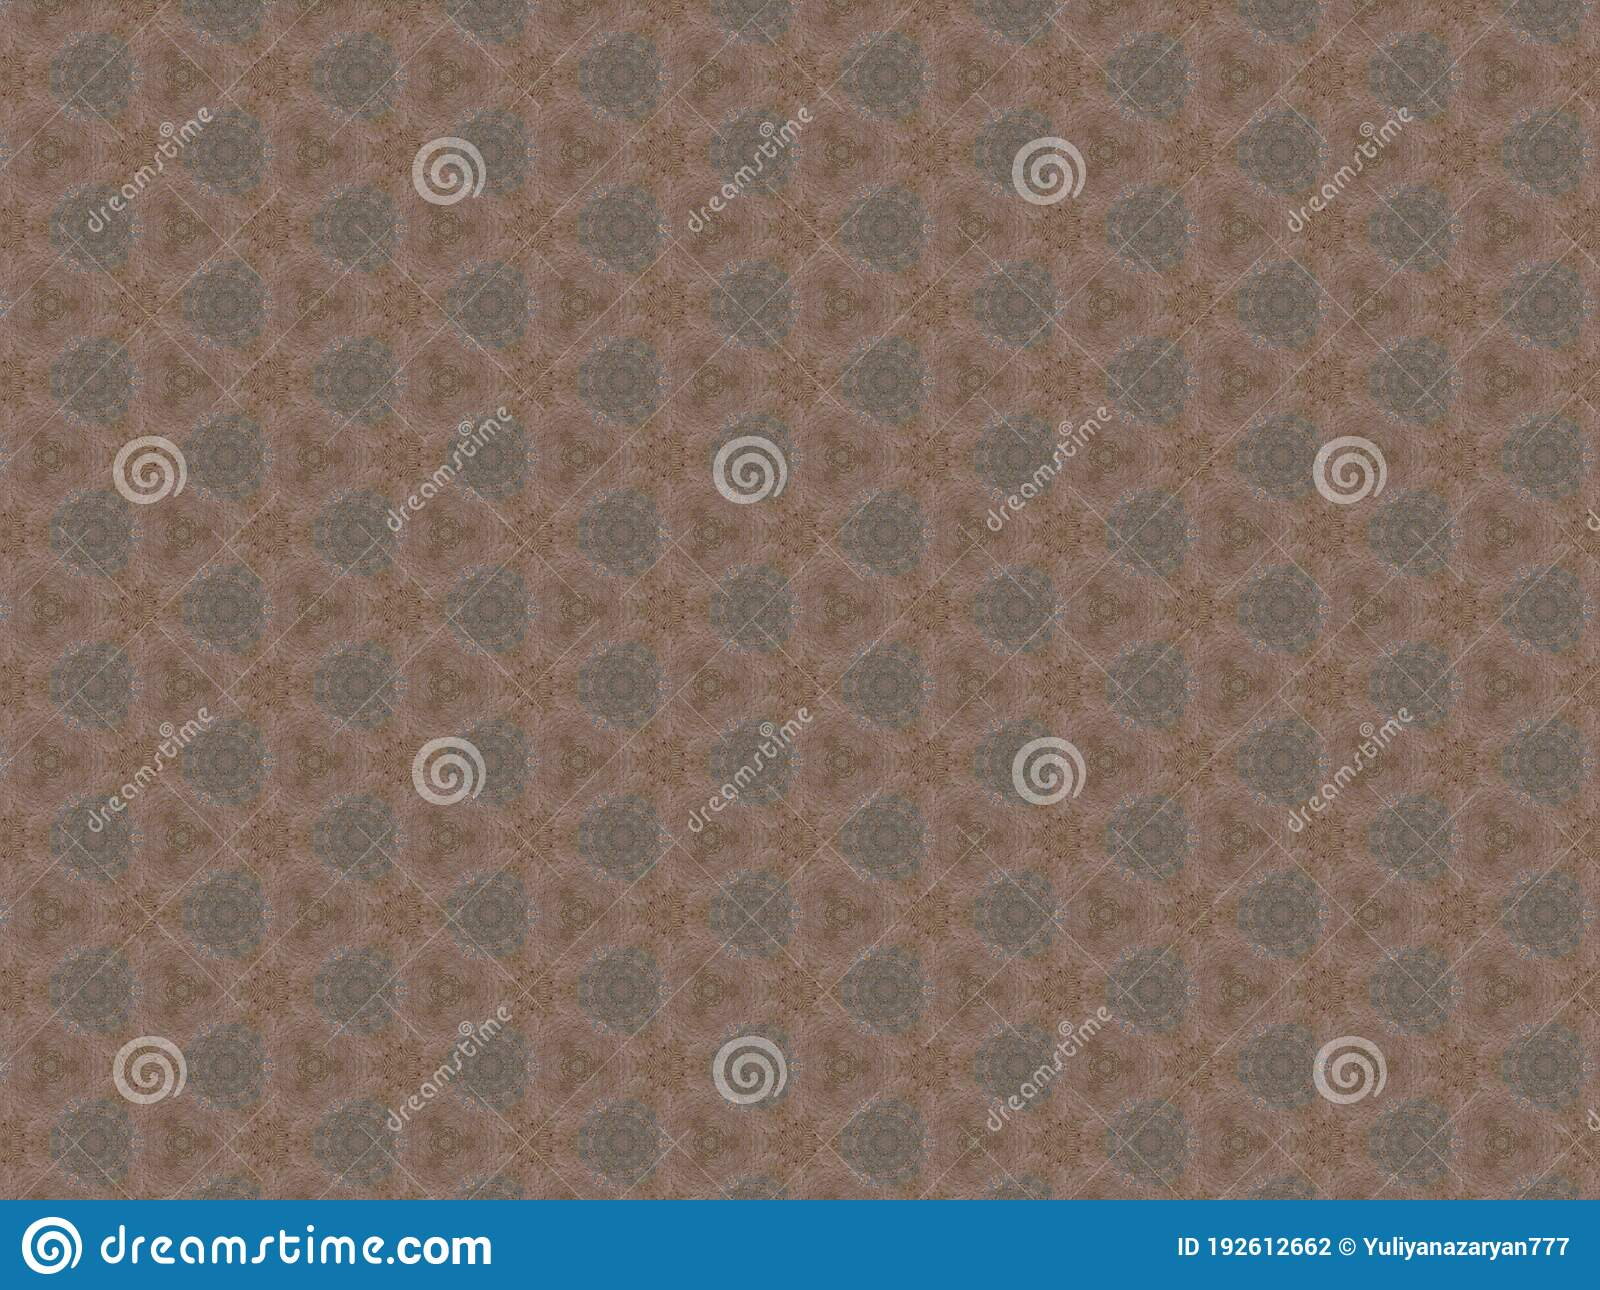 Background Wall And Ceiling And Floor Wallpaper Plaster Clay Ceramics Gypsum Modeling Geometric Shape Pattern Decor Vintage Stock Illustration Illustration Of Blue Creative 192612662